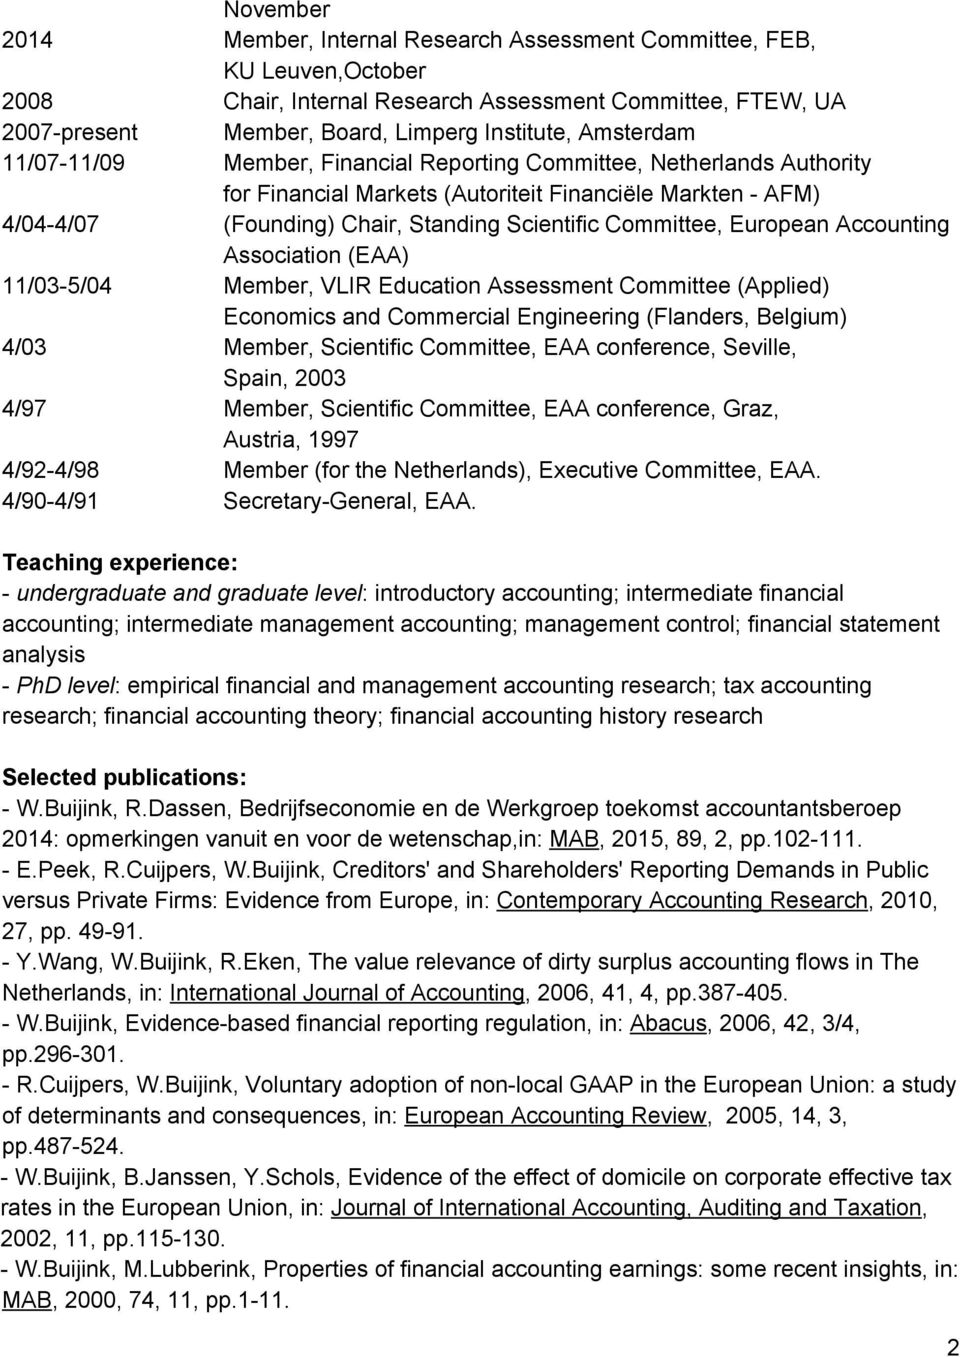 European Accounting Association (EAA) 11/03 5/04 Member, VLIR Education Assessment Committee (Applied) Economics and Commercial Engineering (Flanders, Belgium) 4/03 Member, Scientific Committee, EAA